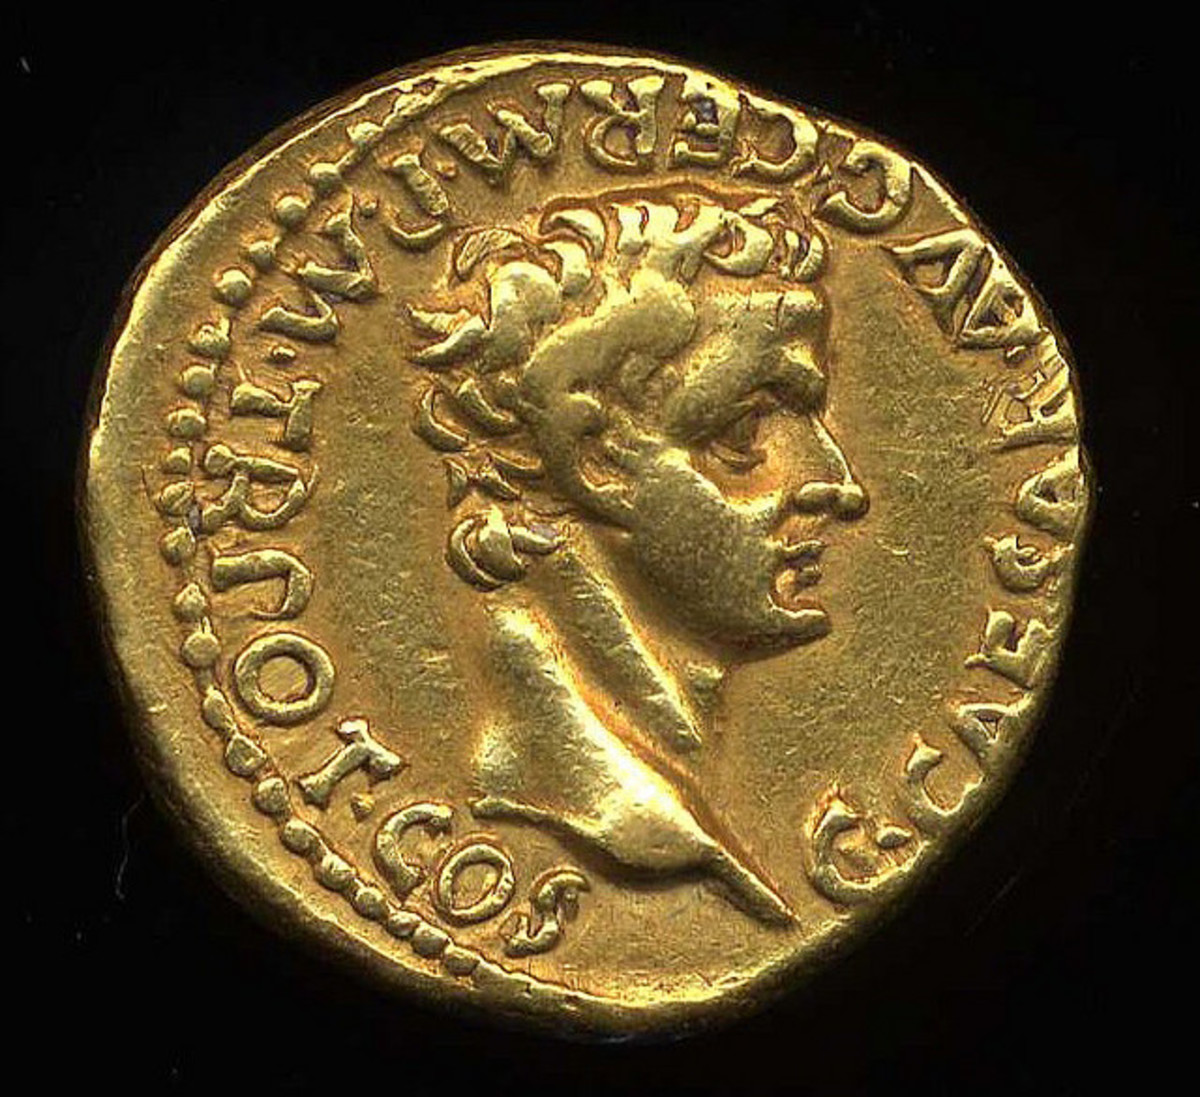 A golden coin depicting Caligula